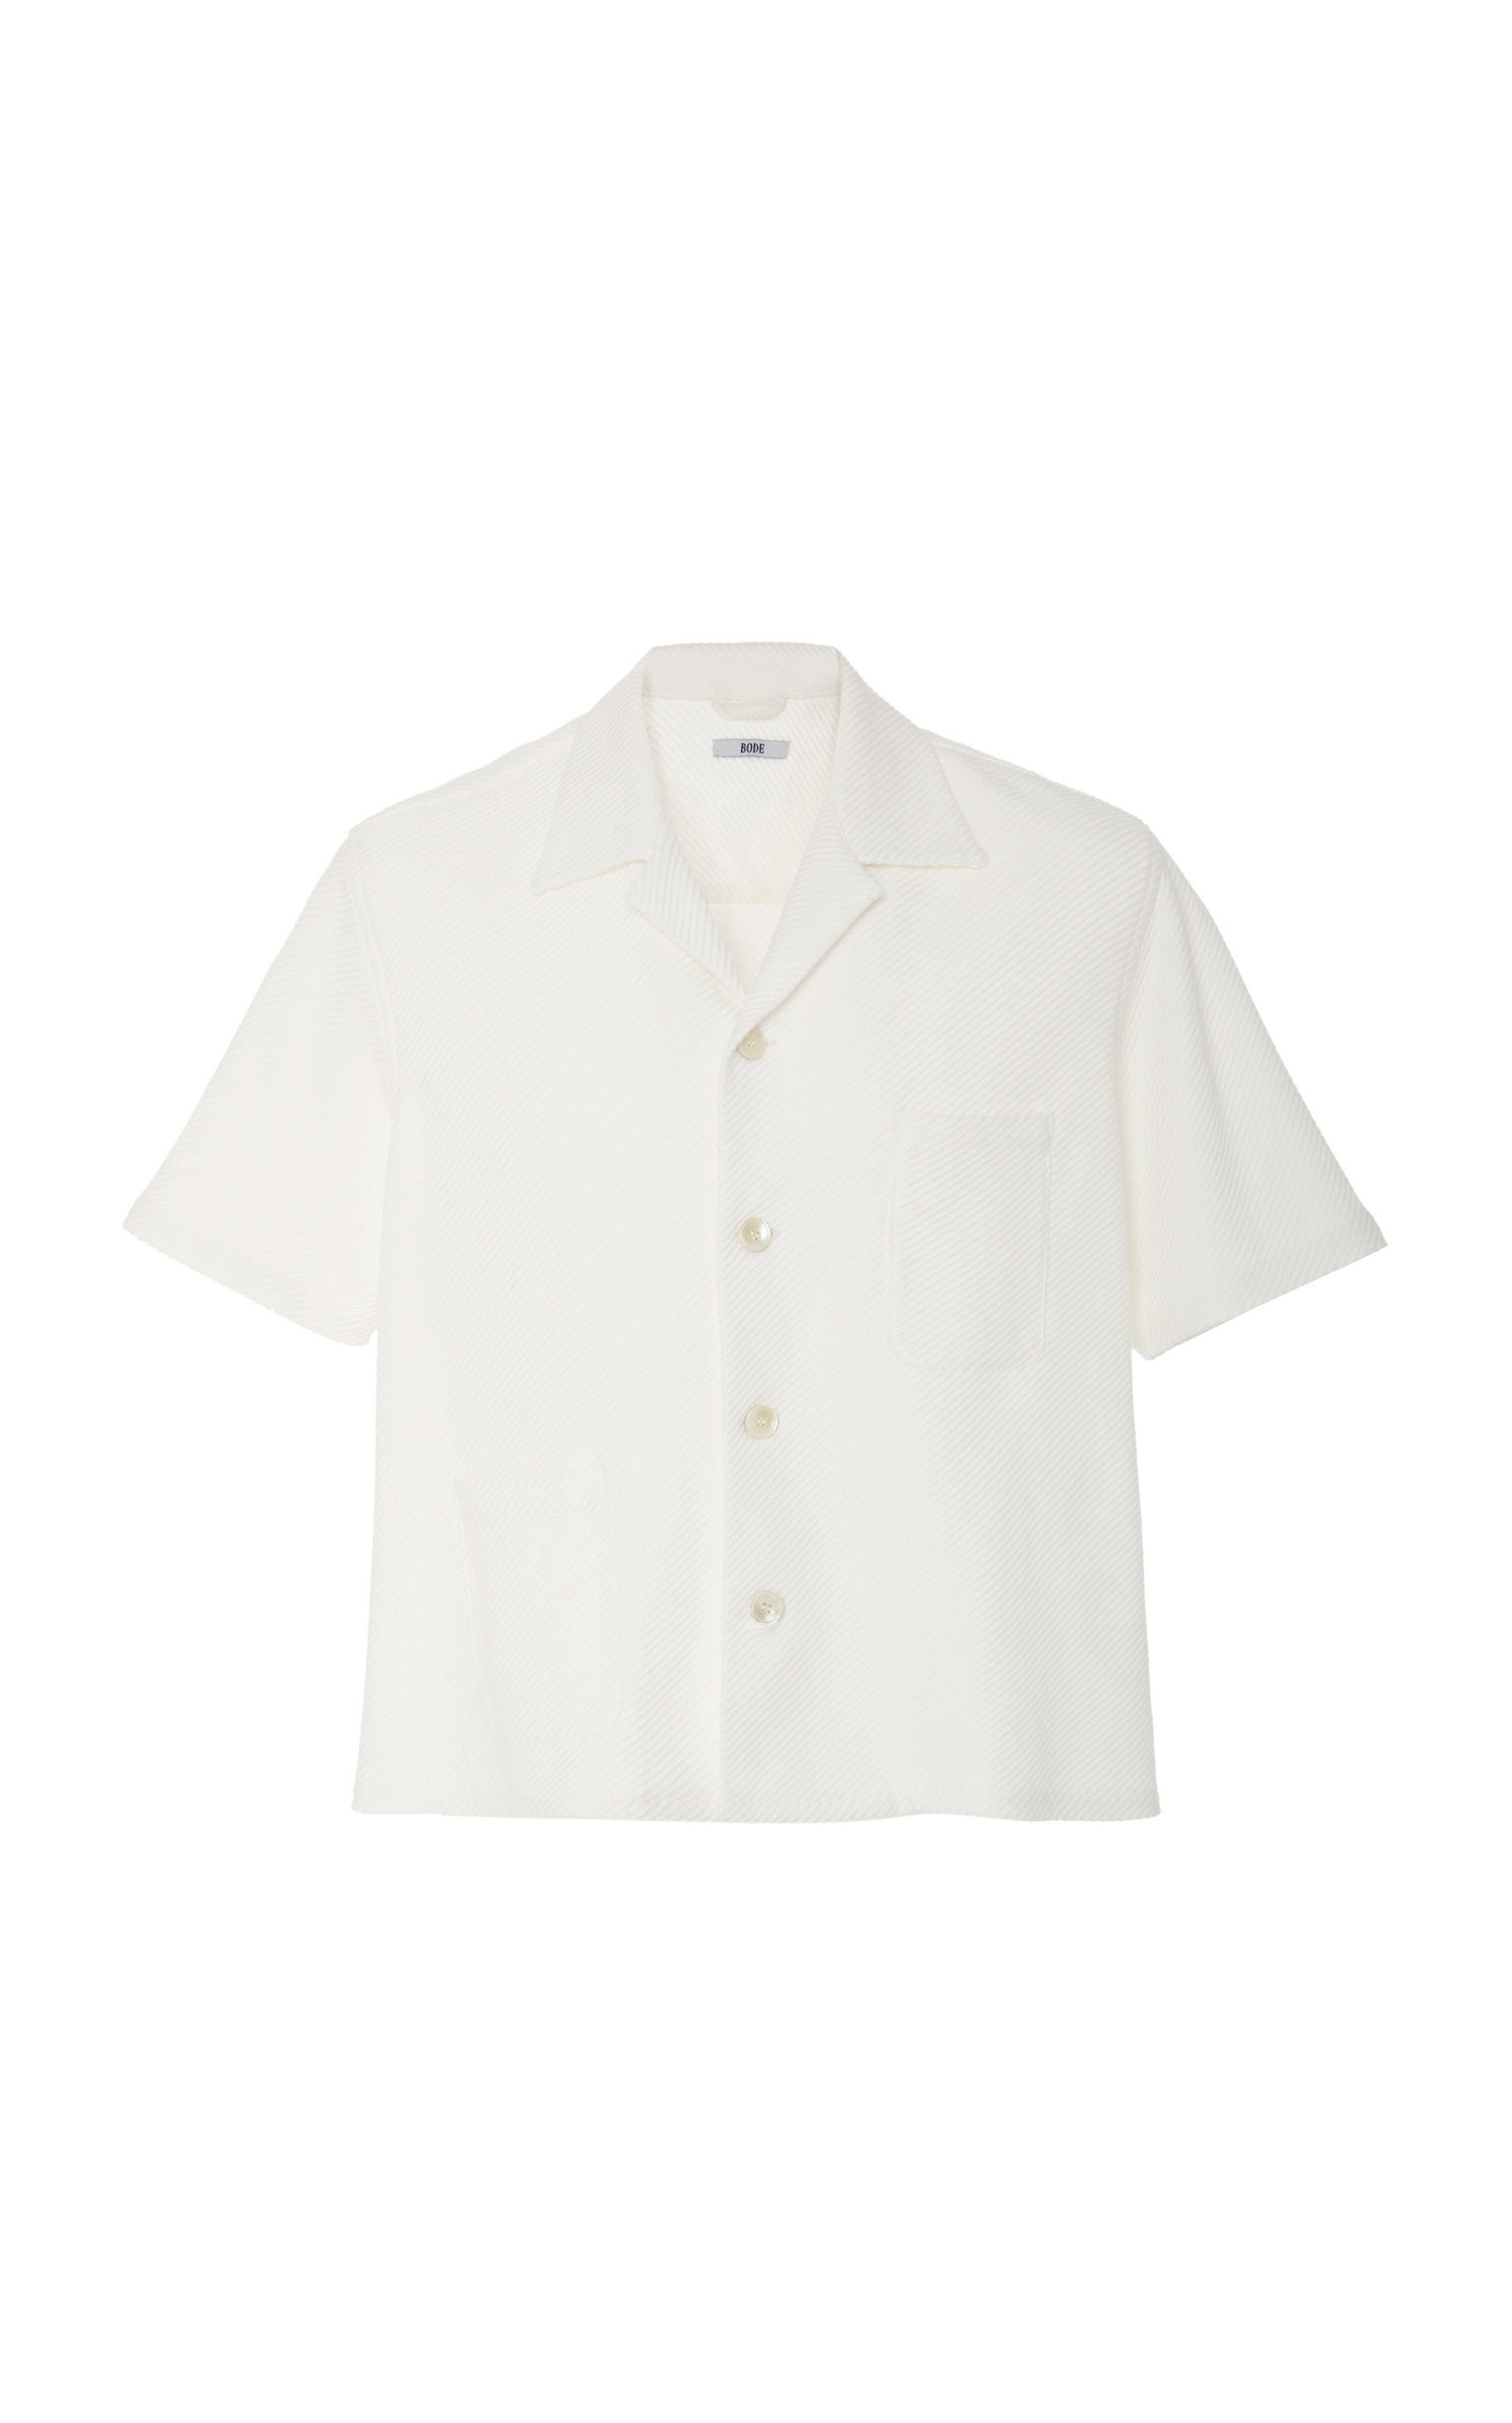 BODE RIBBED LOUIE SHIRT